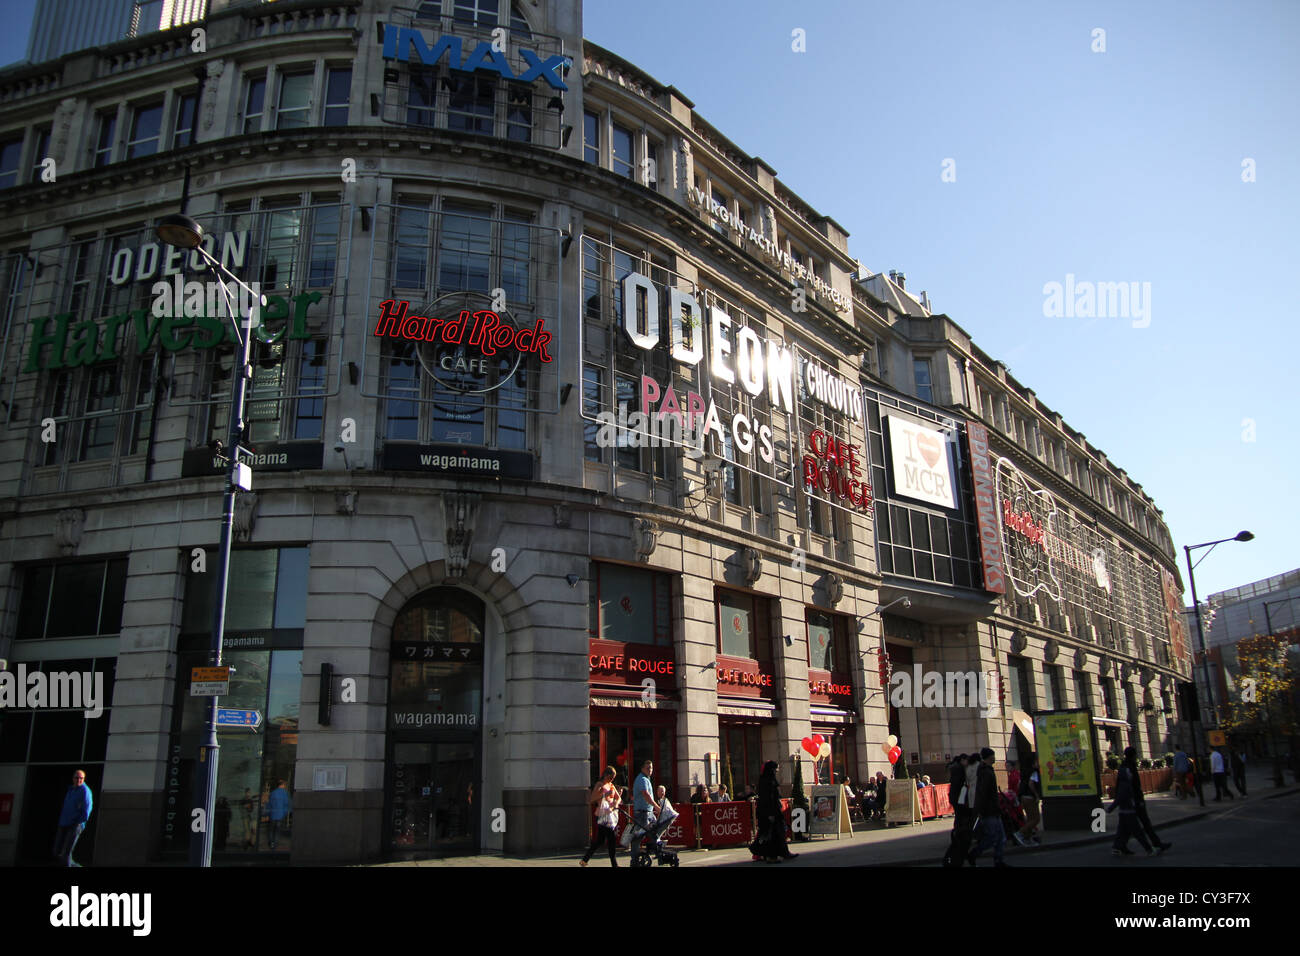 The Printworks is an entertainment venue, located on Withy Grove in Manchester city centre, England. - Stock Image